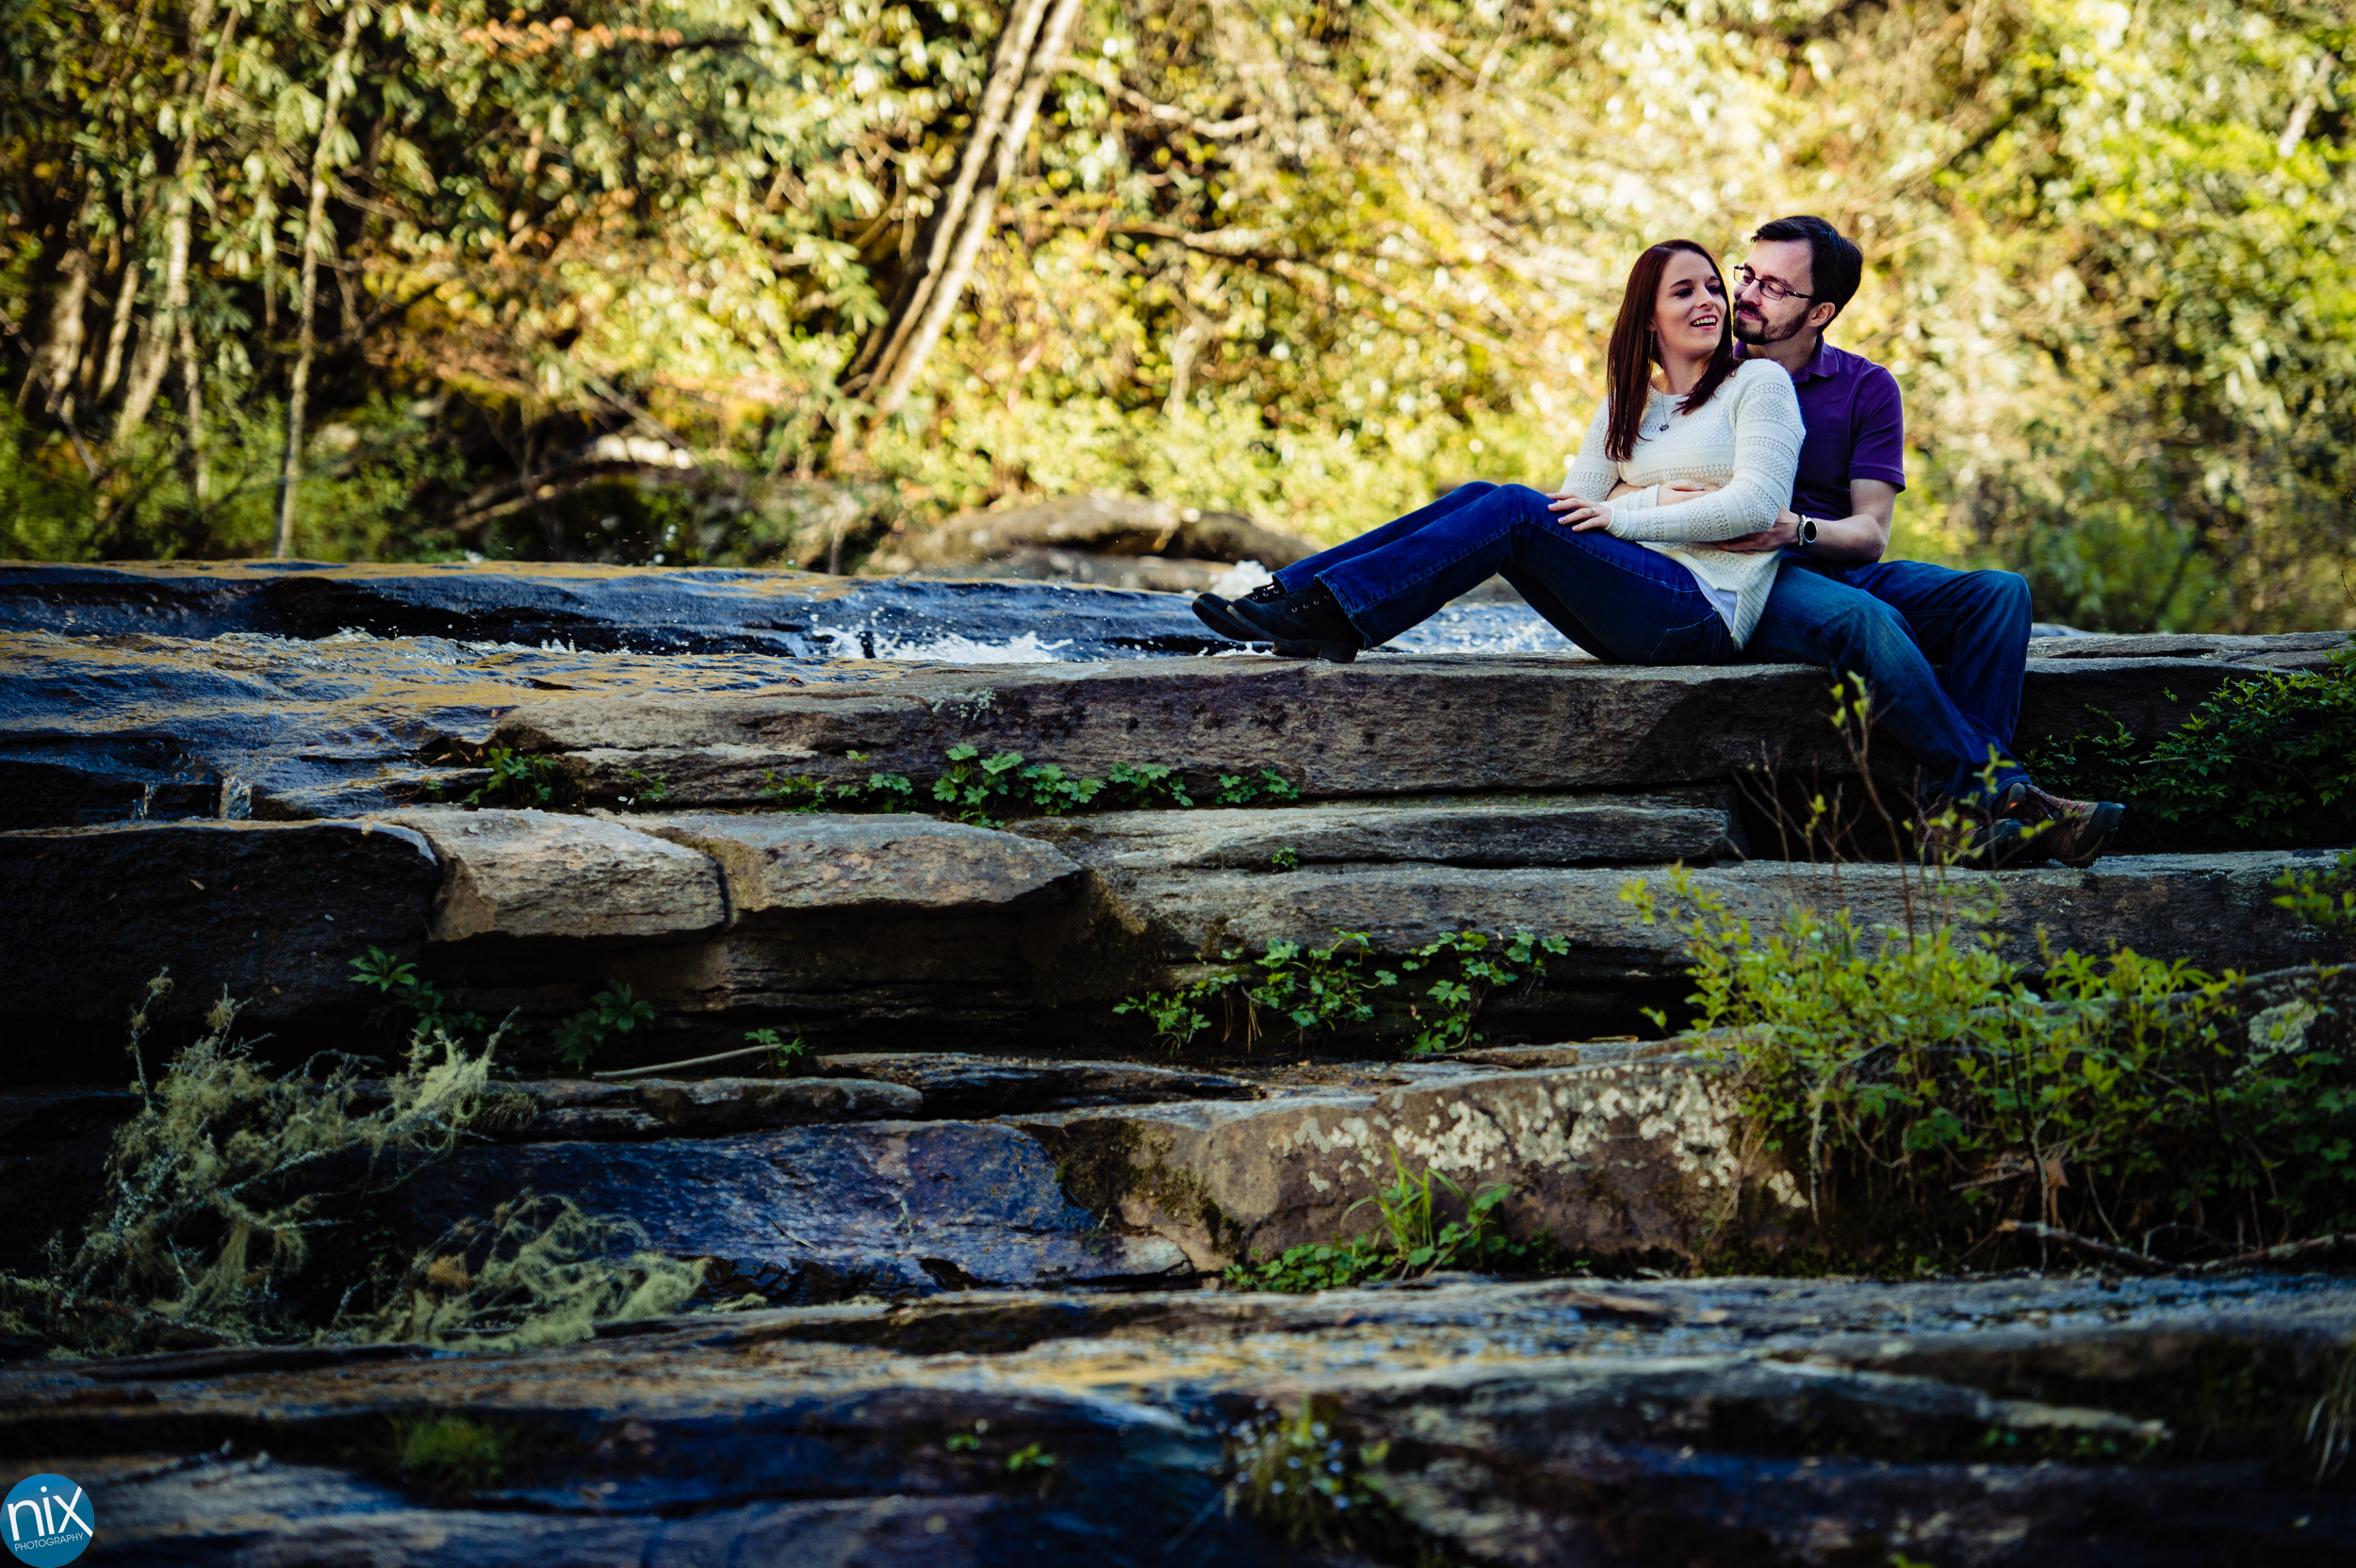 couple-sitting-on-rocks-by-river-DuPont-State-Forest.jpg